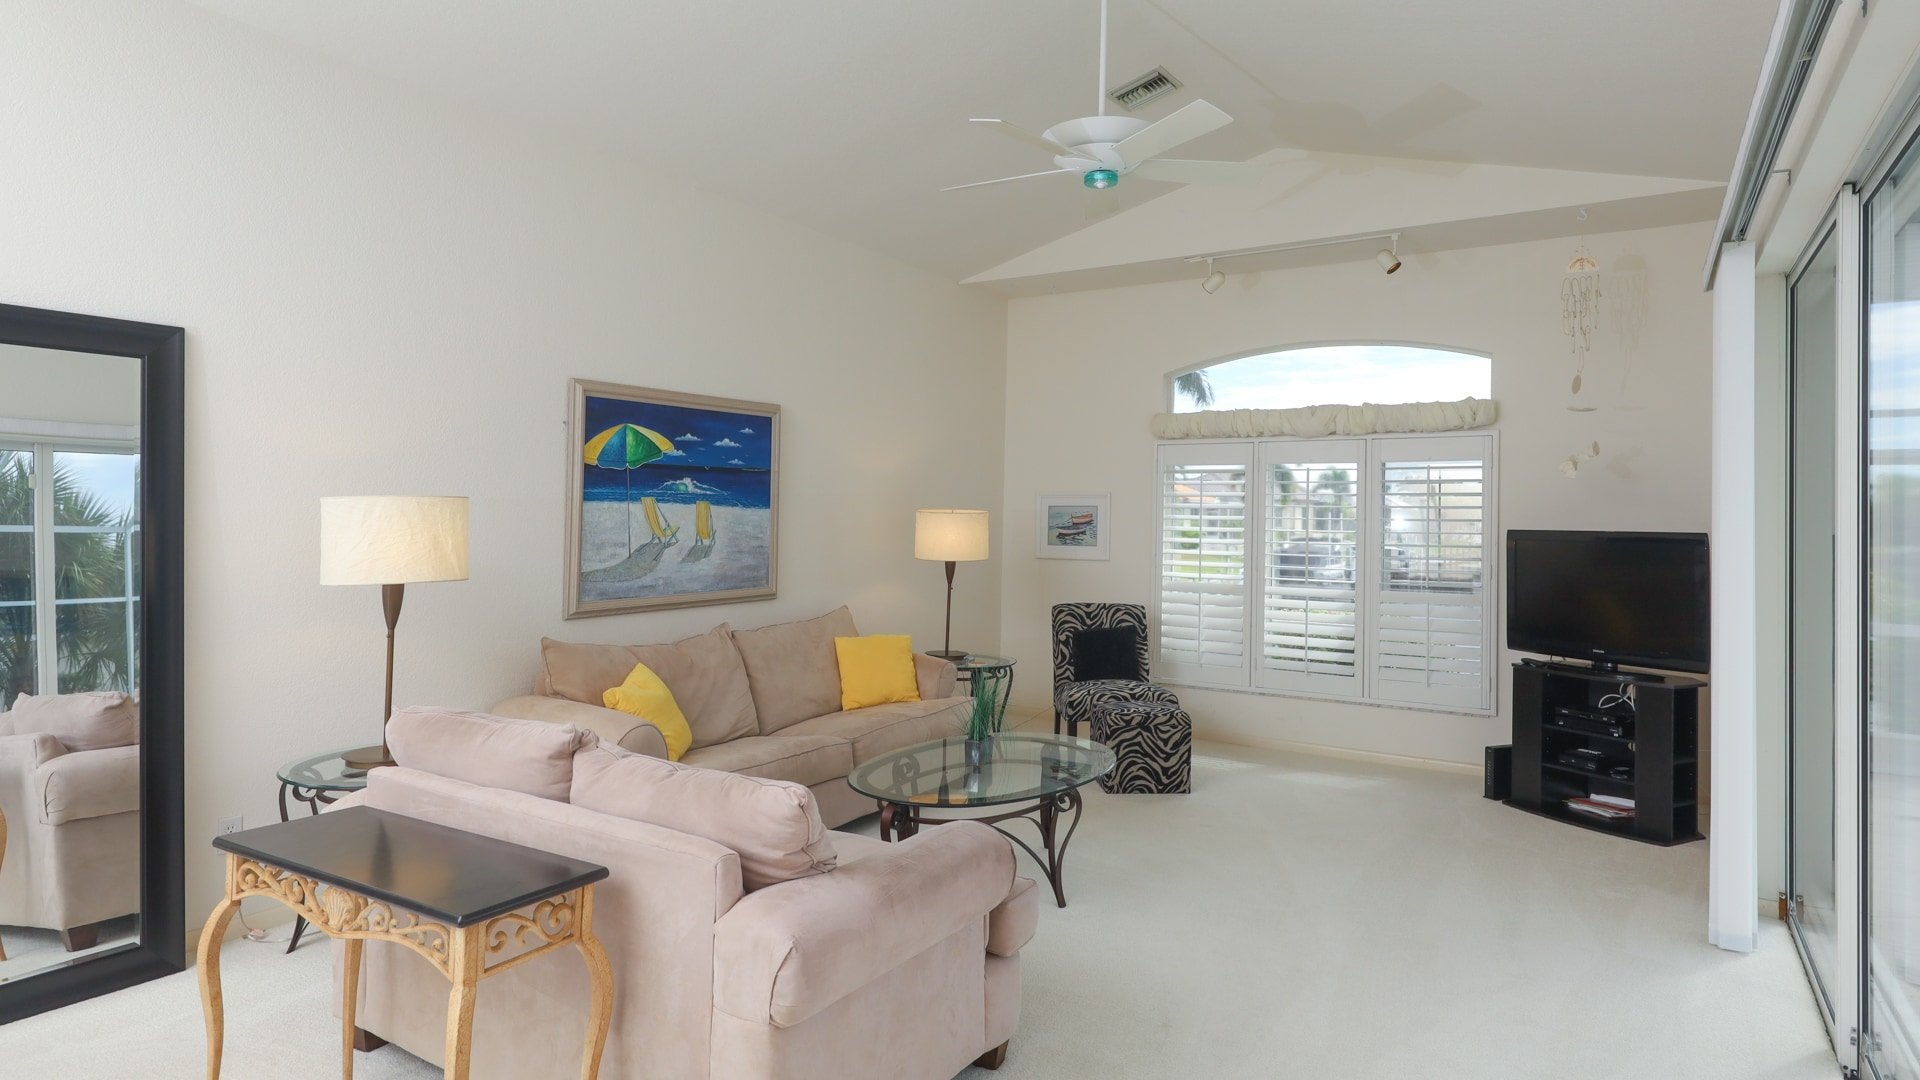 3836 Paola Dr-212762